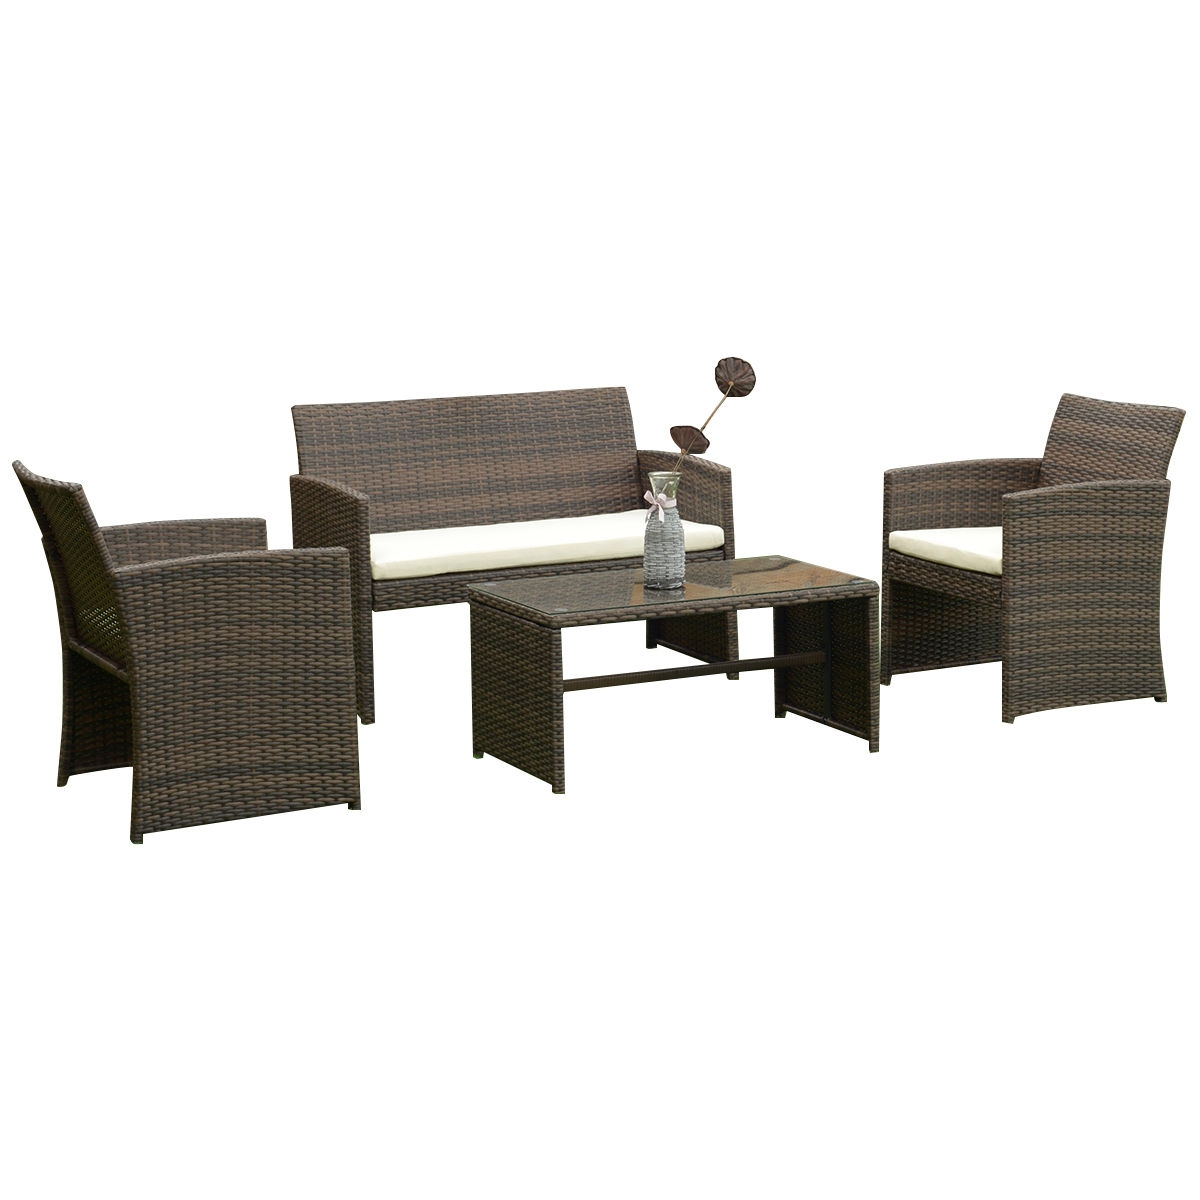 Widely Used 4 Pcs Patio Rattan Wicker Furniture Set Regarding Boyce Outdoor Patio Sectionals With Cushions (View 14 of 25)